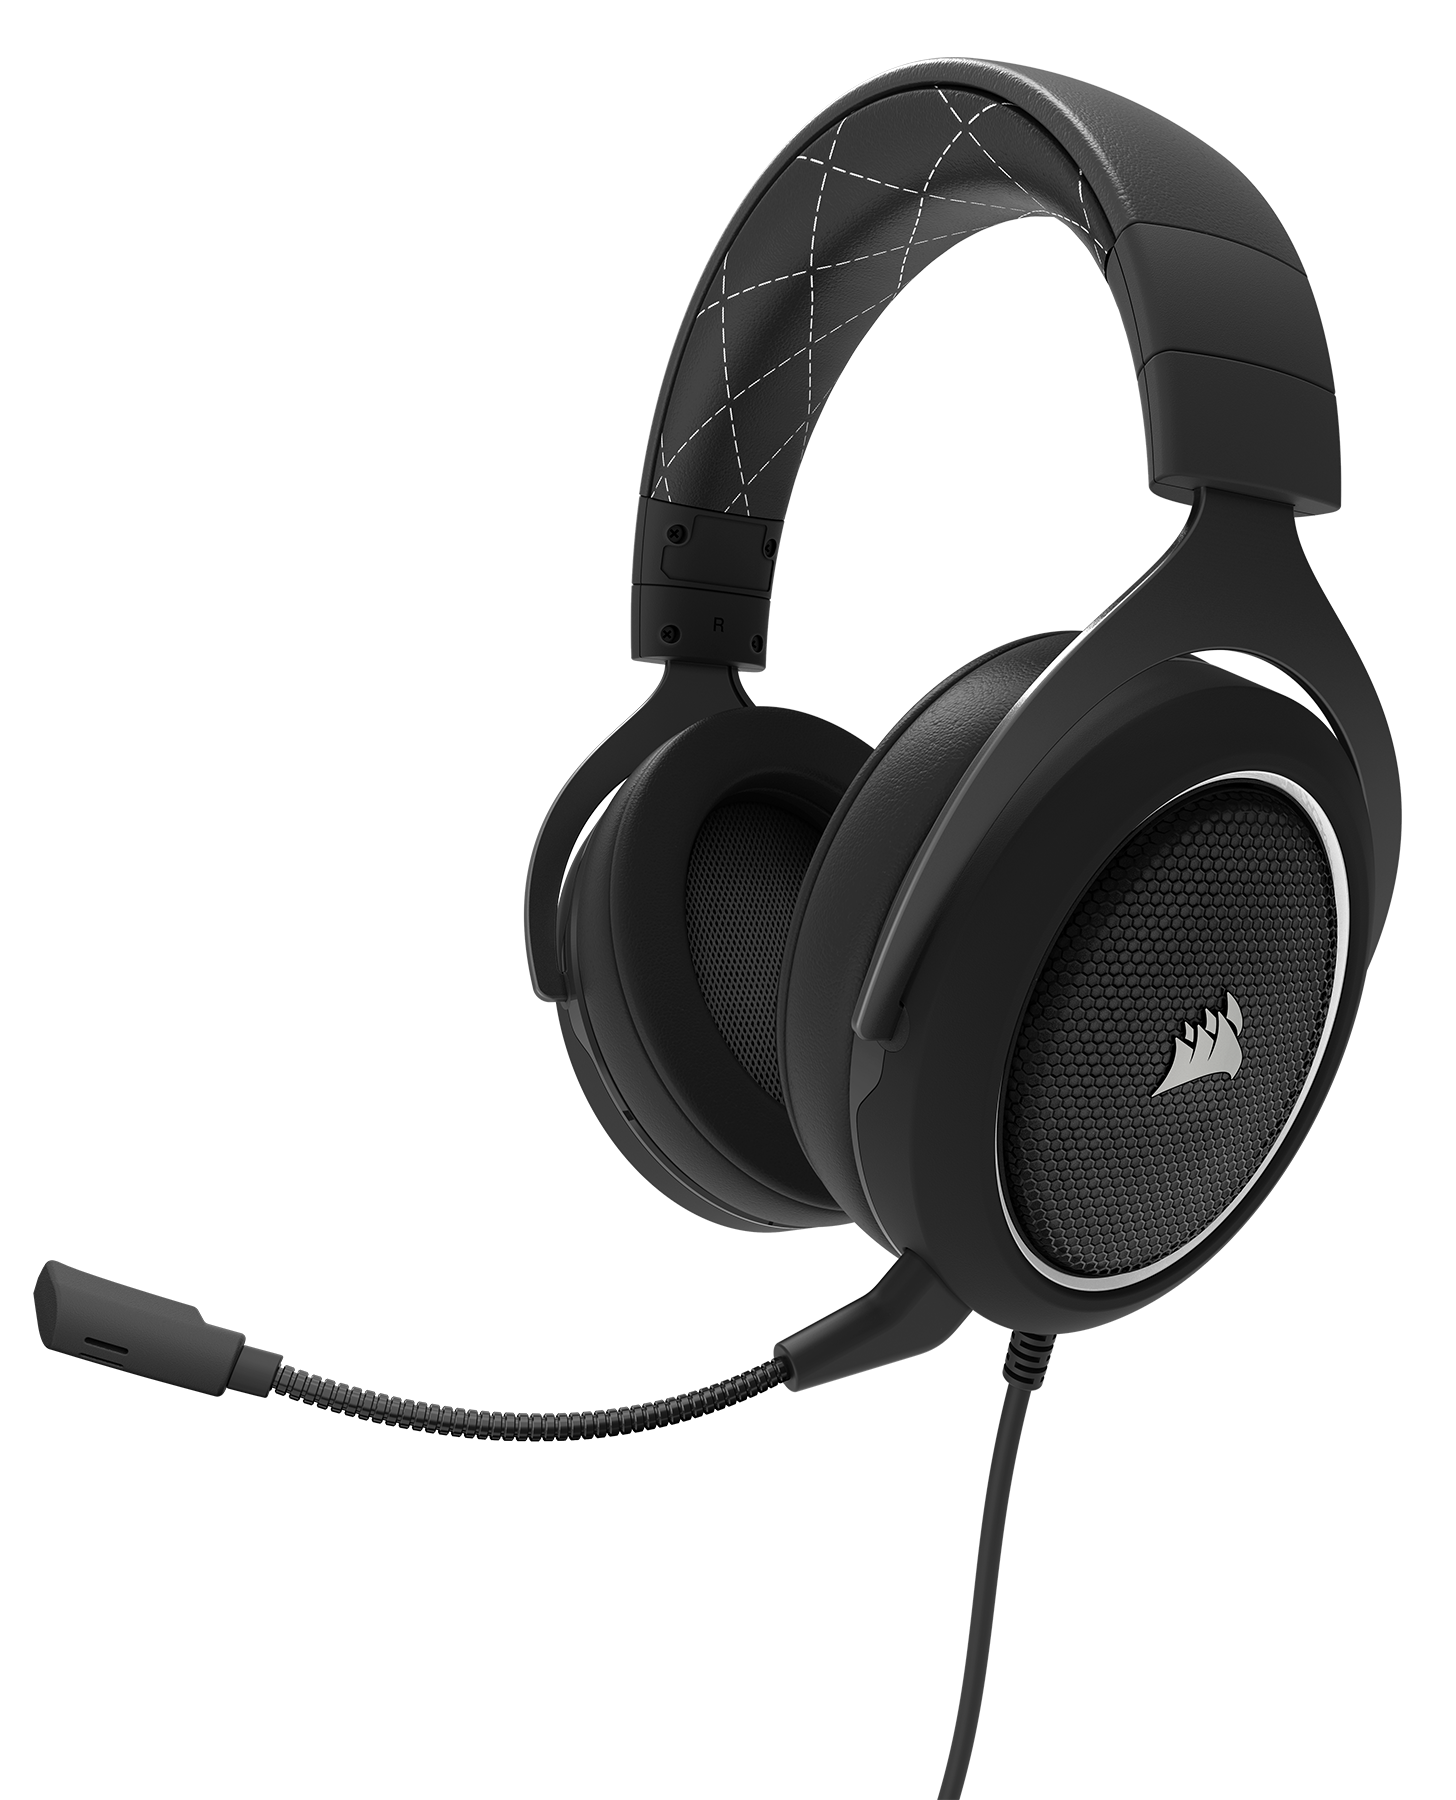 540f8743968 Corsair HS60 Surround Stereo Gaming Headset with 7.1 Surround Sound - White